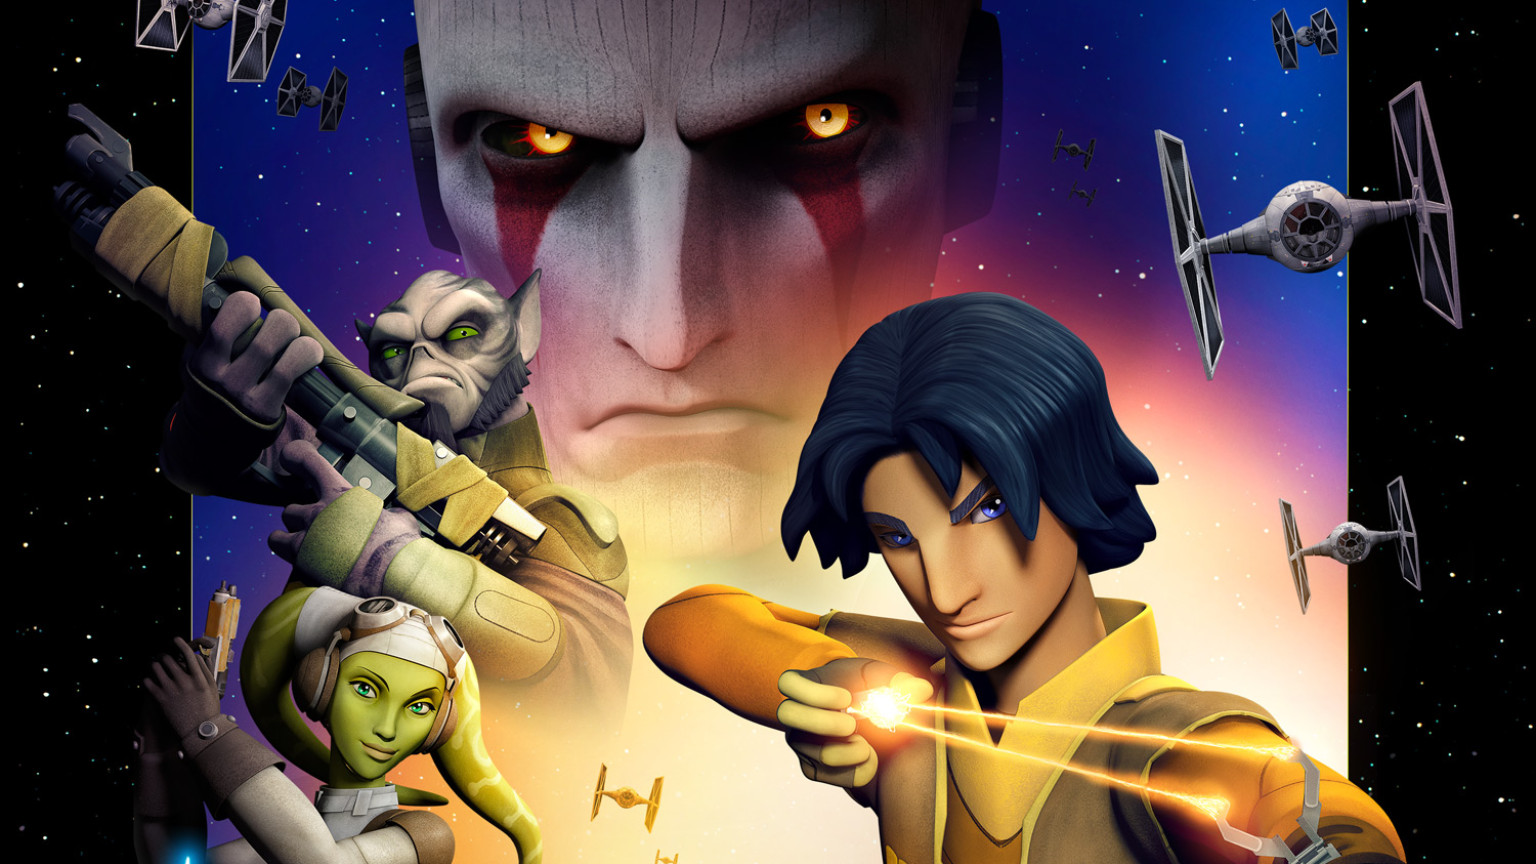 rebels-sdcc-header-1536×864-495850591268